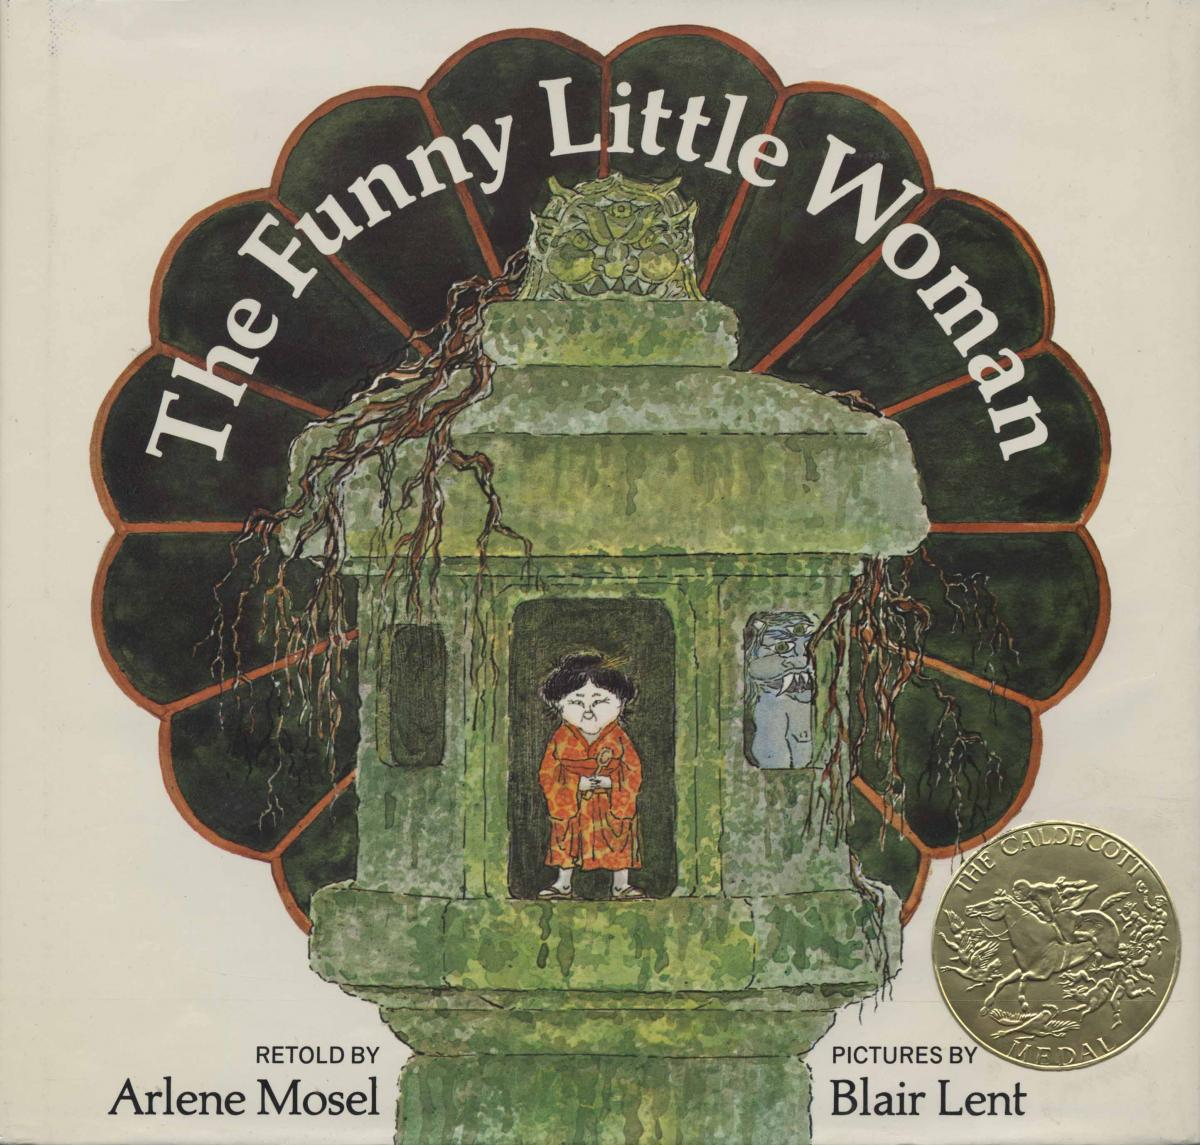 The Funny Little Woman - book cover image